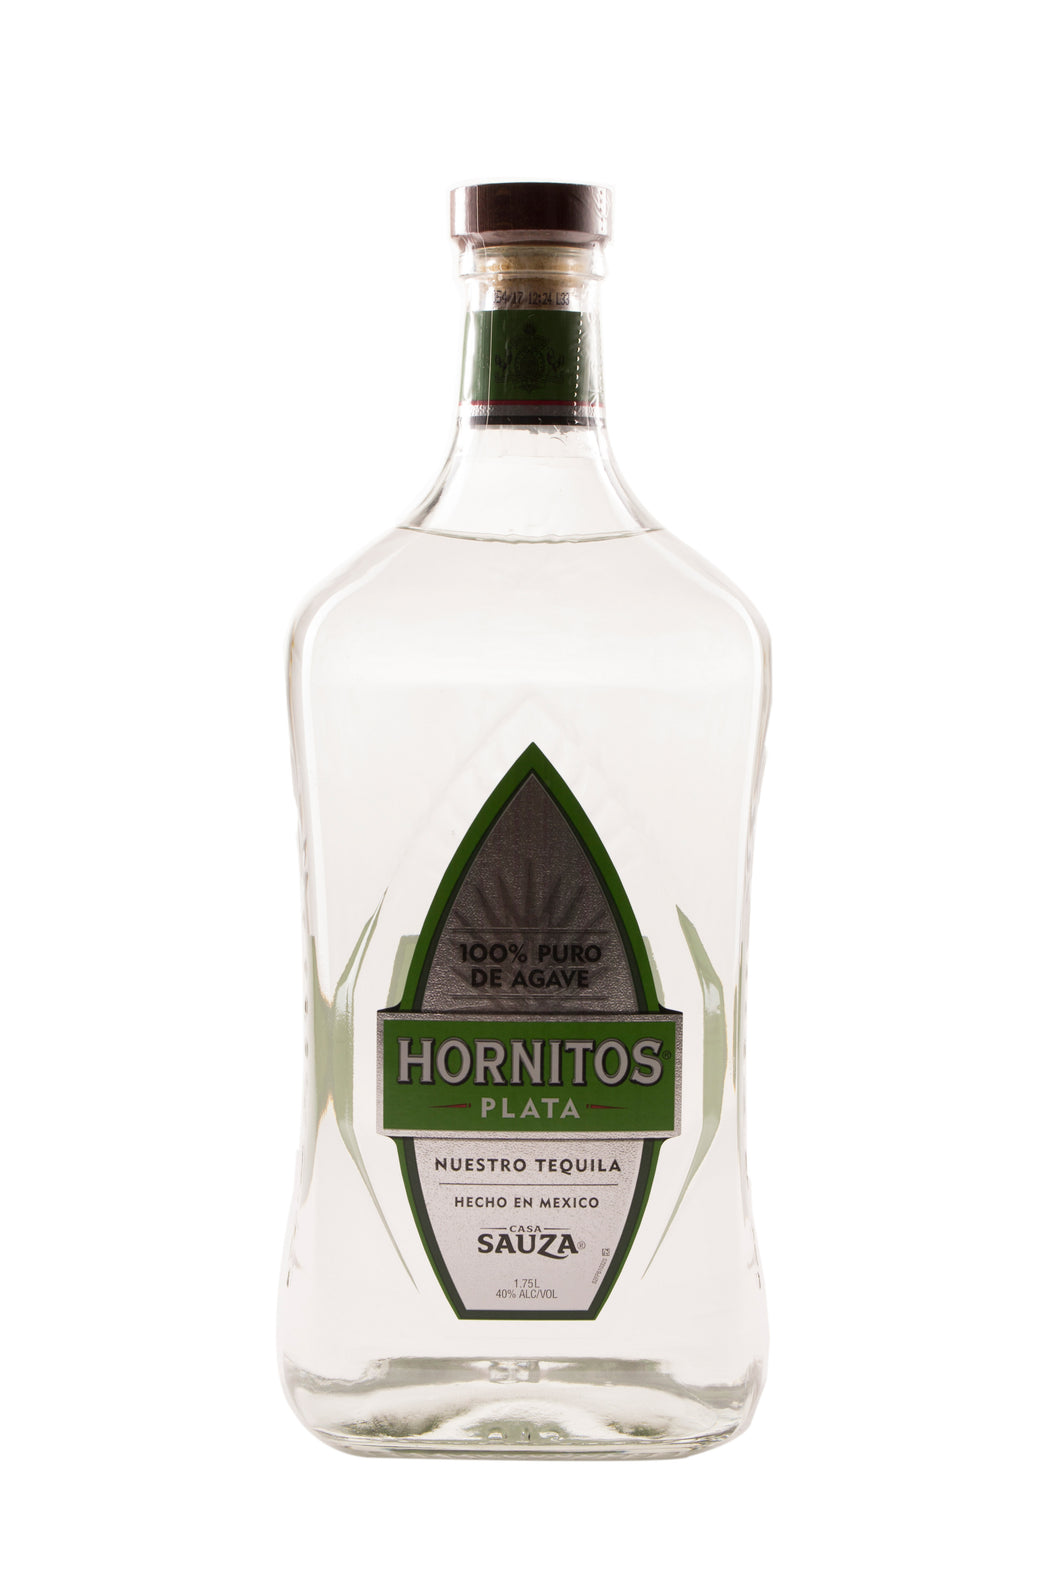 Sauza Hornitos Plata 1.75